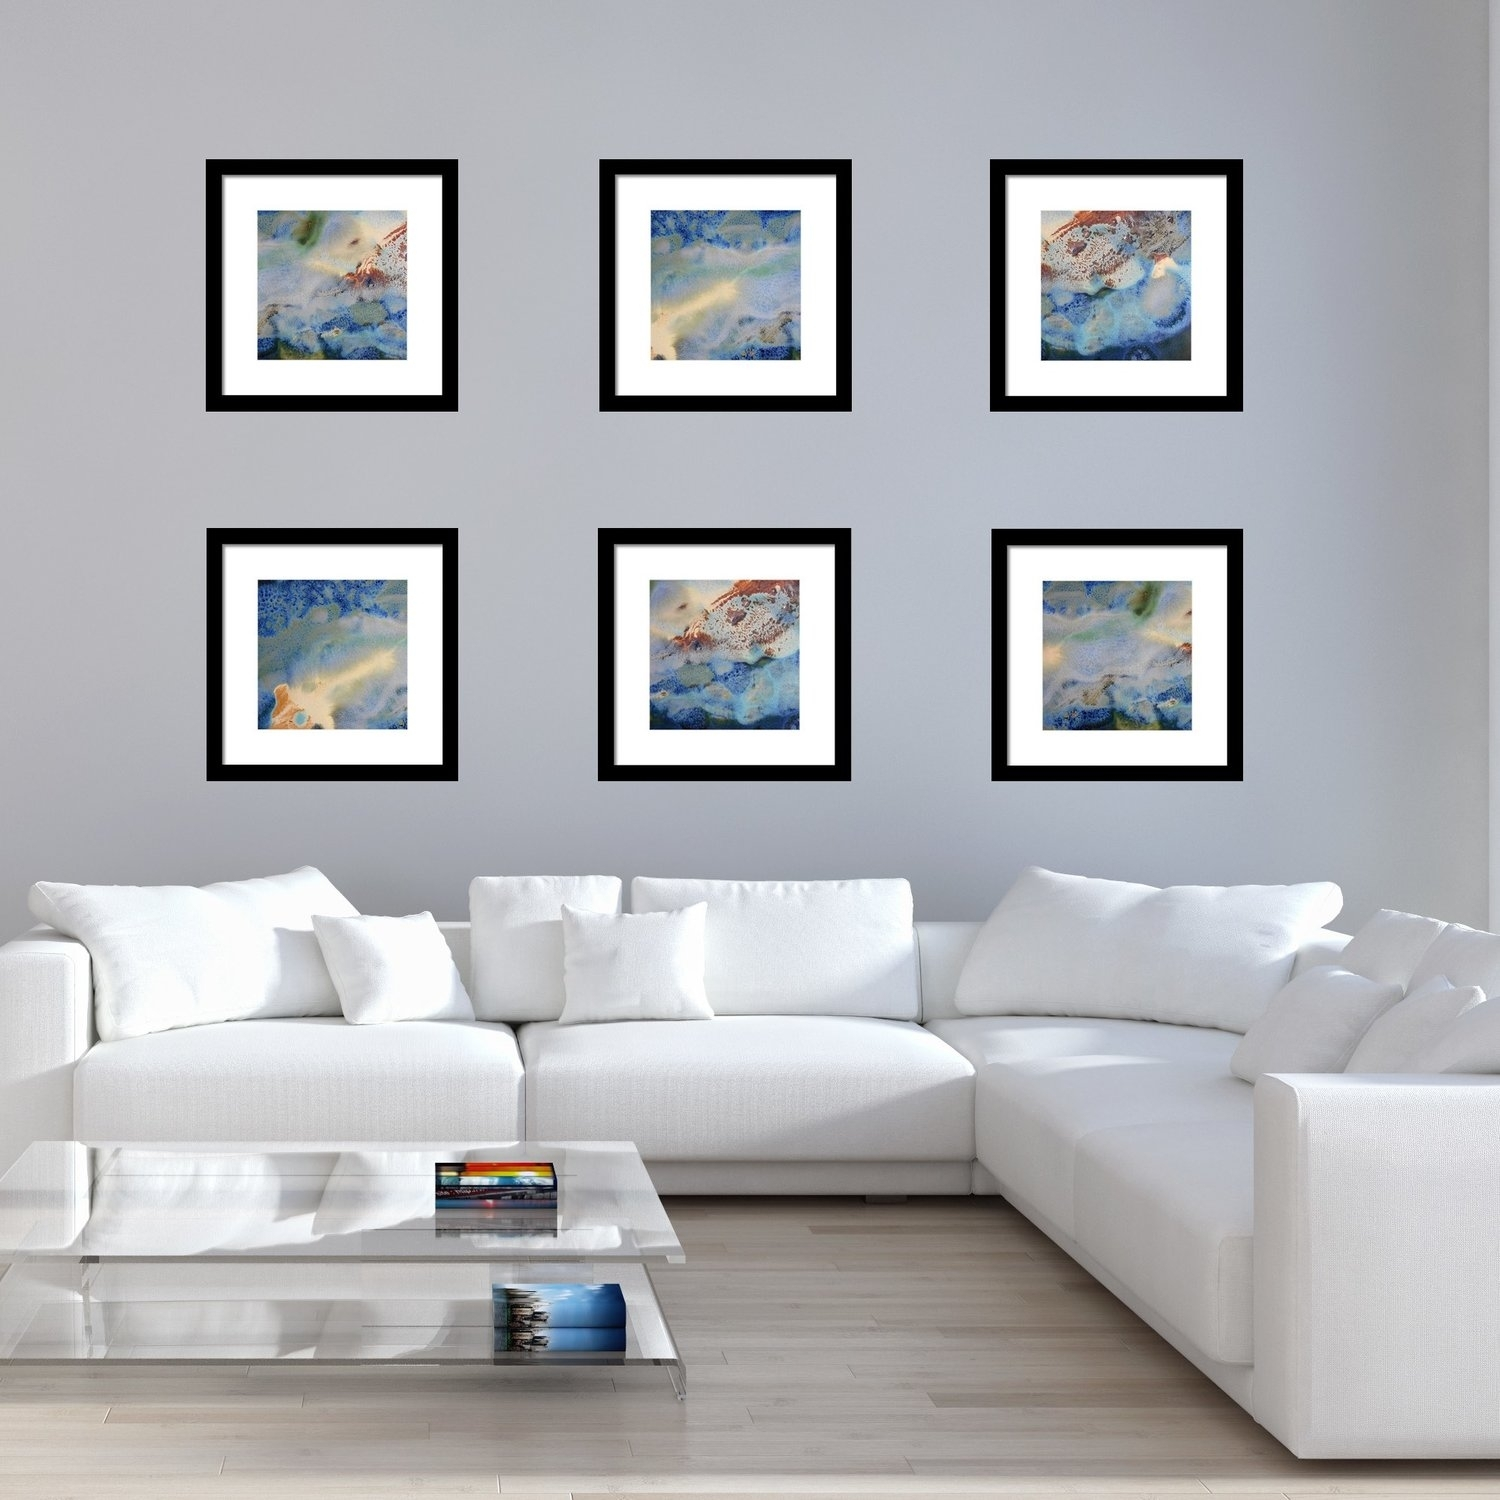 Gallery of Framed Art Prints For Living Room (View 4 of 15 Photos)